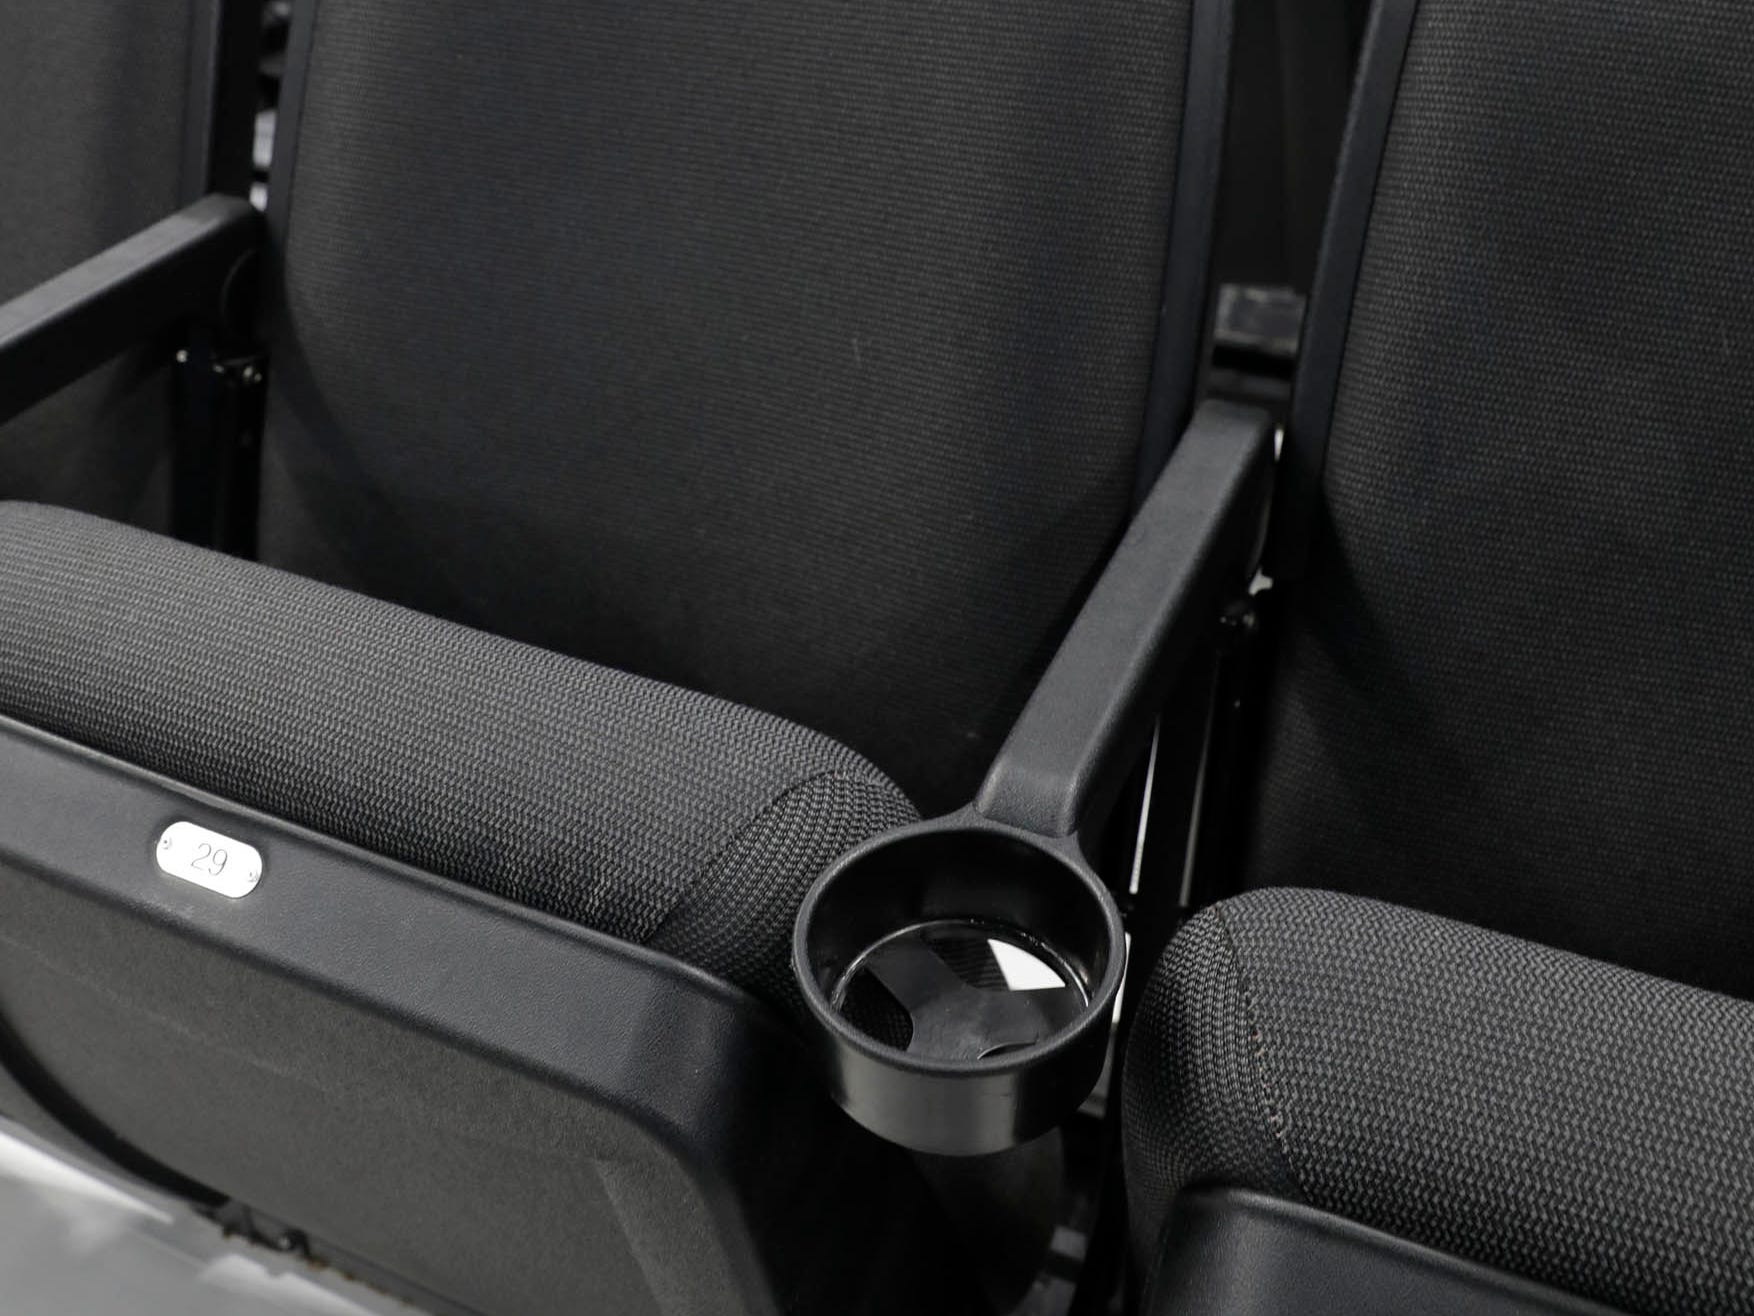 More than 3,000 cup holders that were not deep enough are being replaced.